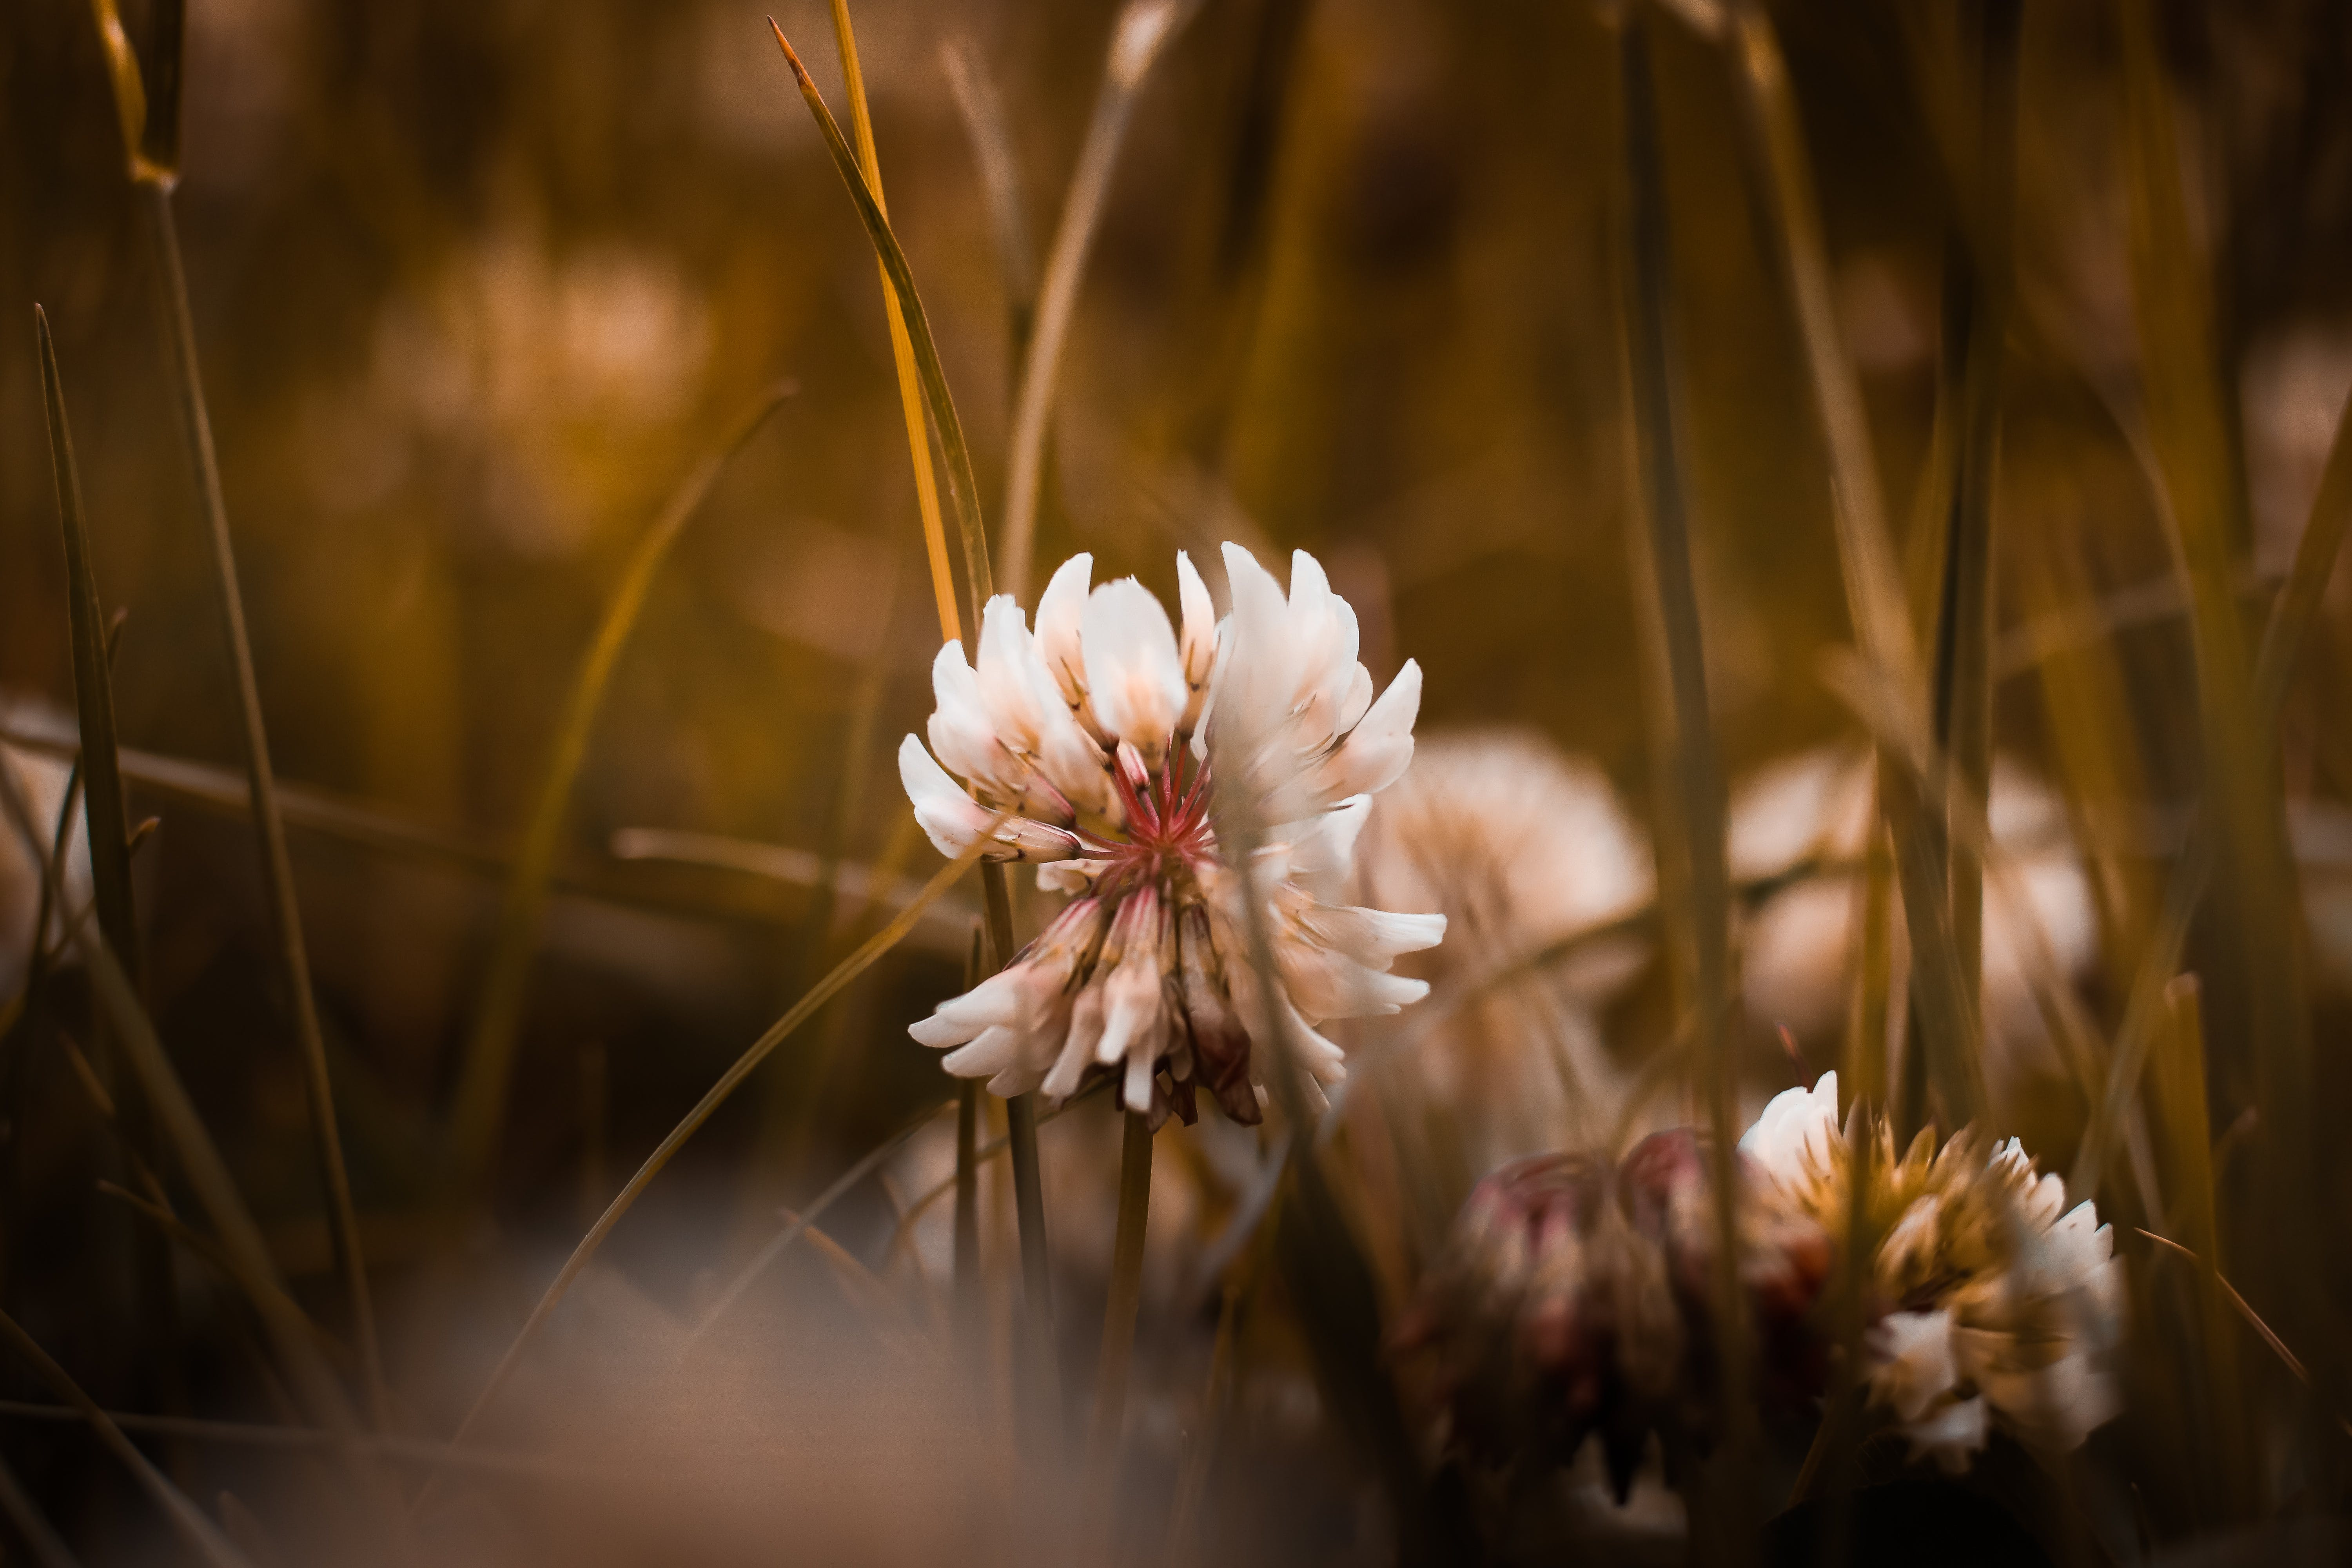 White Petal Flower in Shallow Focus Photography